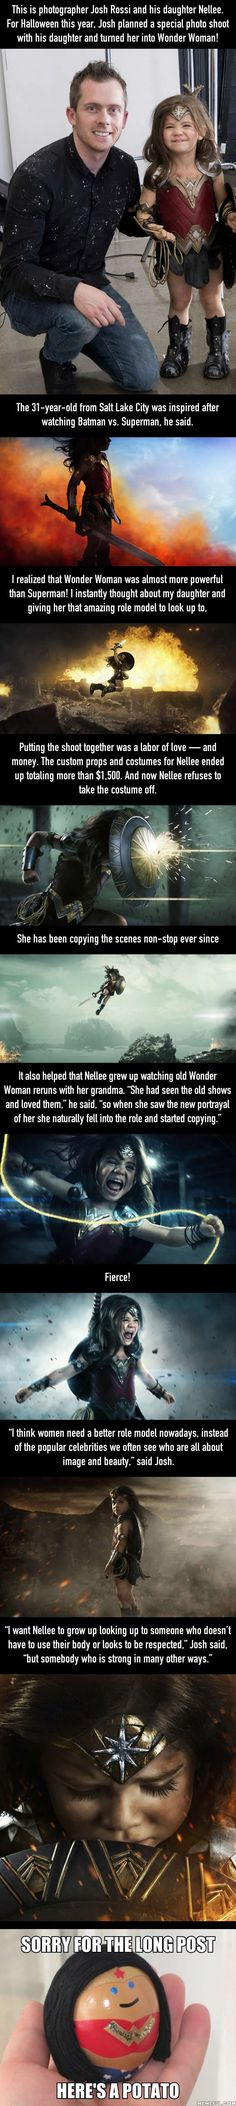 A Dad Had An Incredible Wonder Woman Halloween Photoshoot For His Daughter (By Josh Rossi) - 9GAG